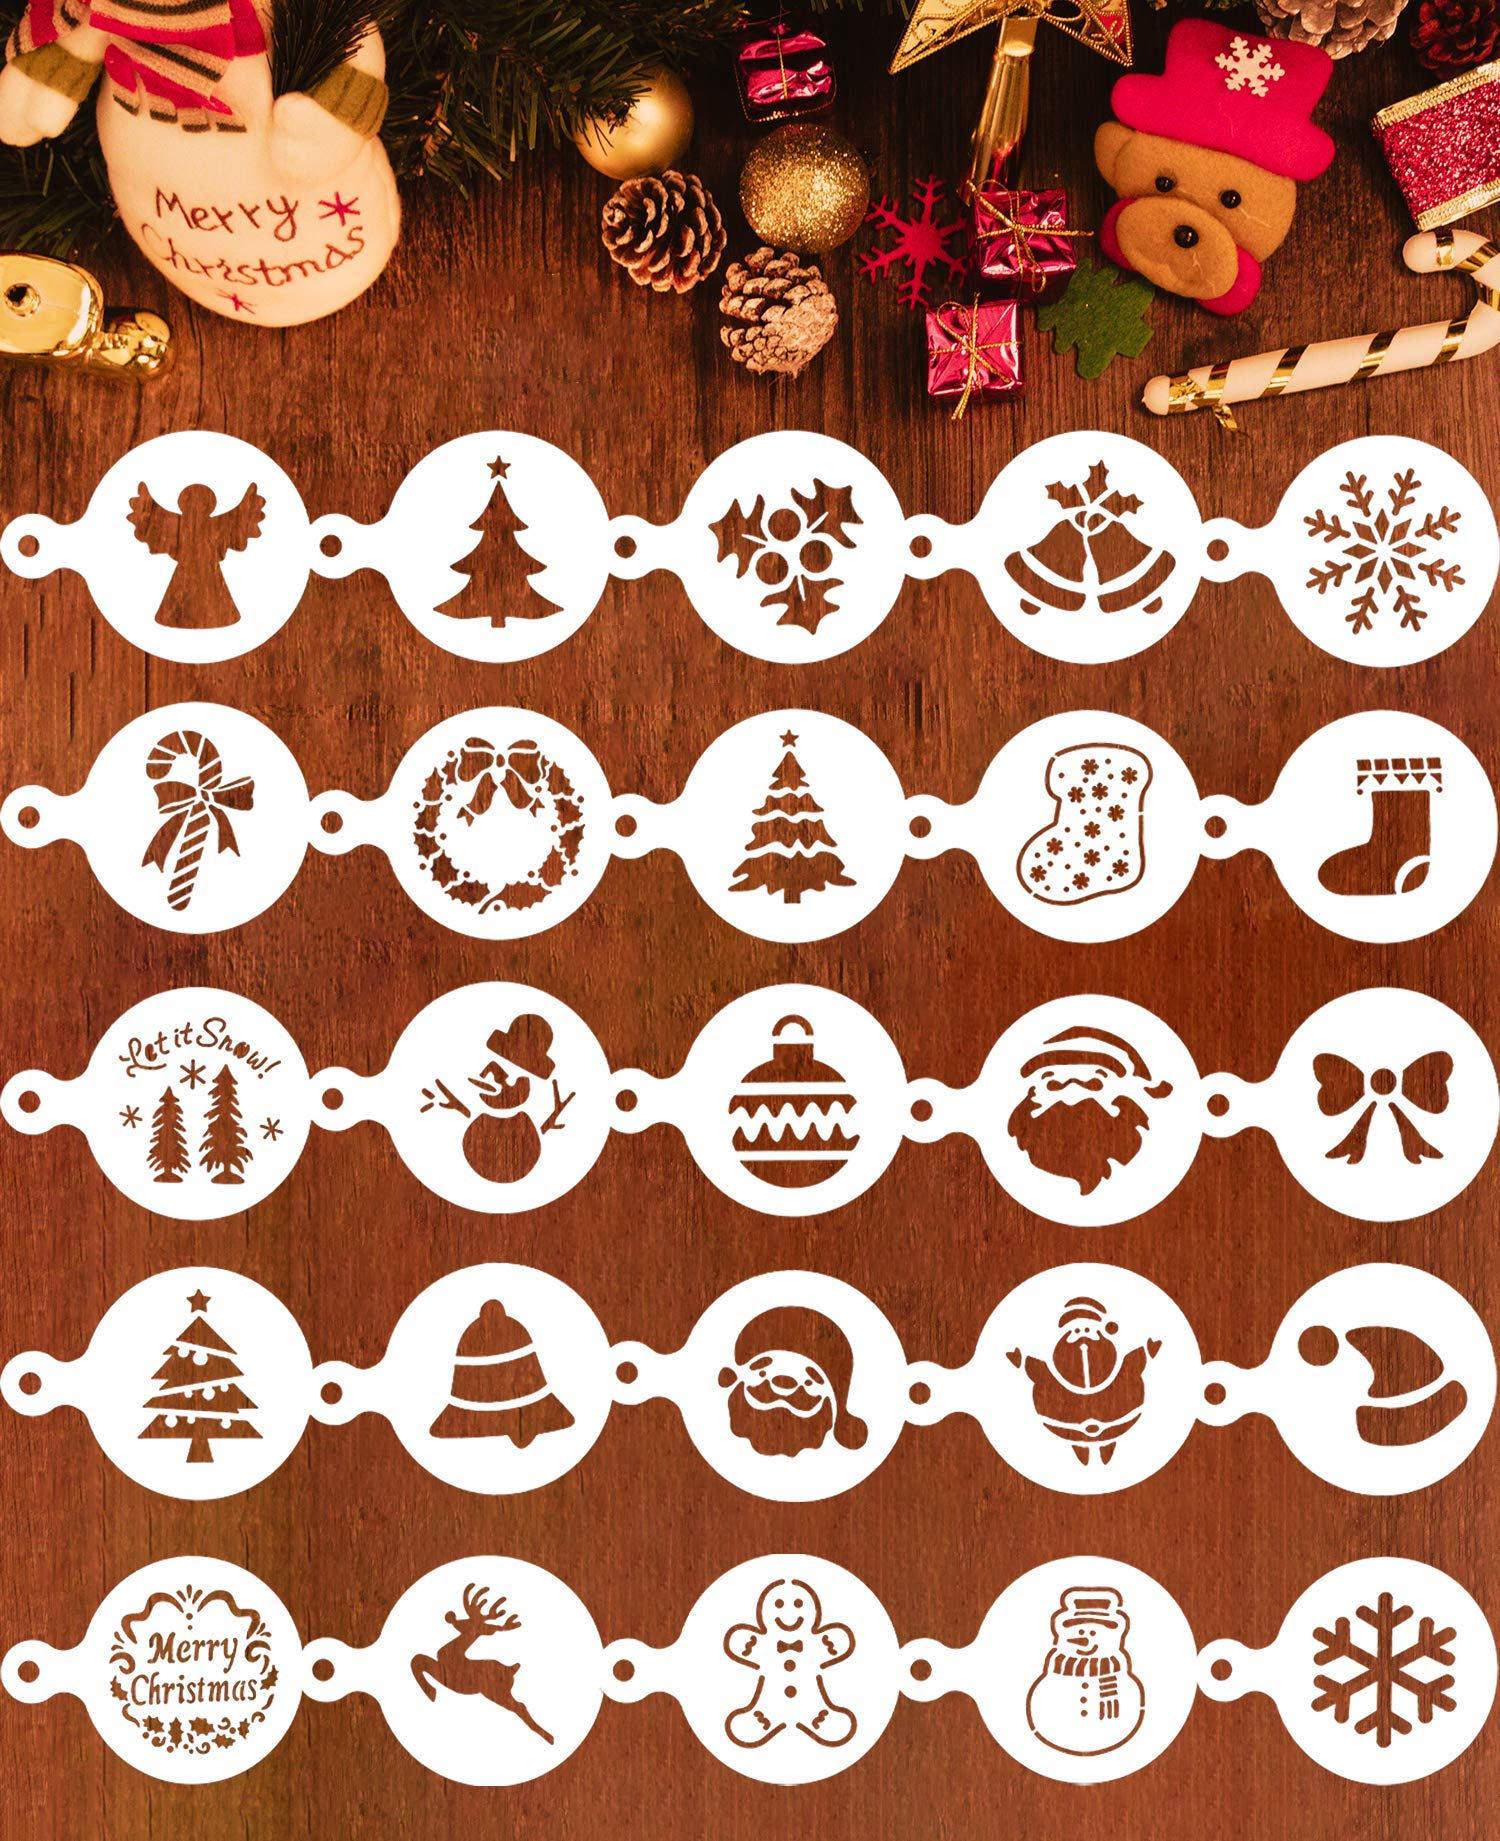 Qpout 25pcs Christmas Cookie Stencil Set, Xmas Party Cookie Fondant Coffee Decoration Embossing Mold, Santa Claus Christmas Tree Snowflake Christmas Stocking Bell Snowman Plastic Painting Templates